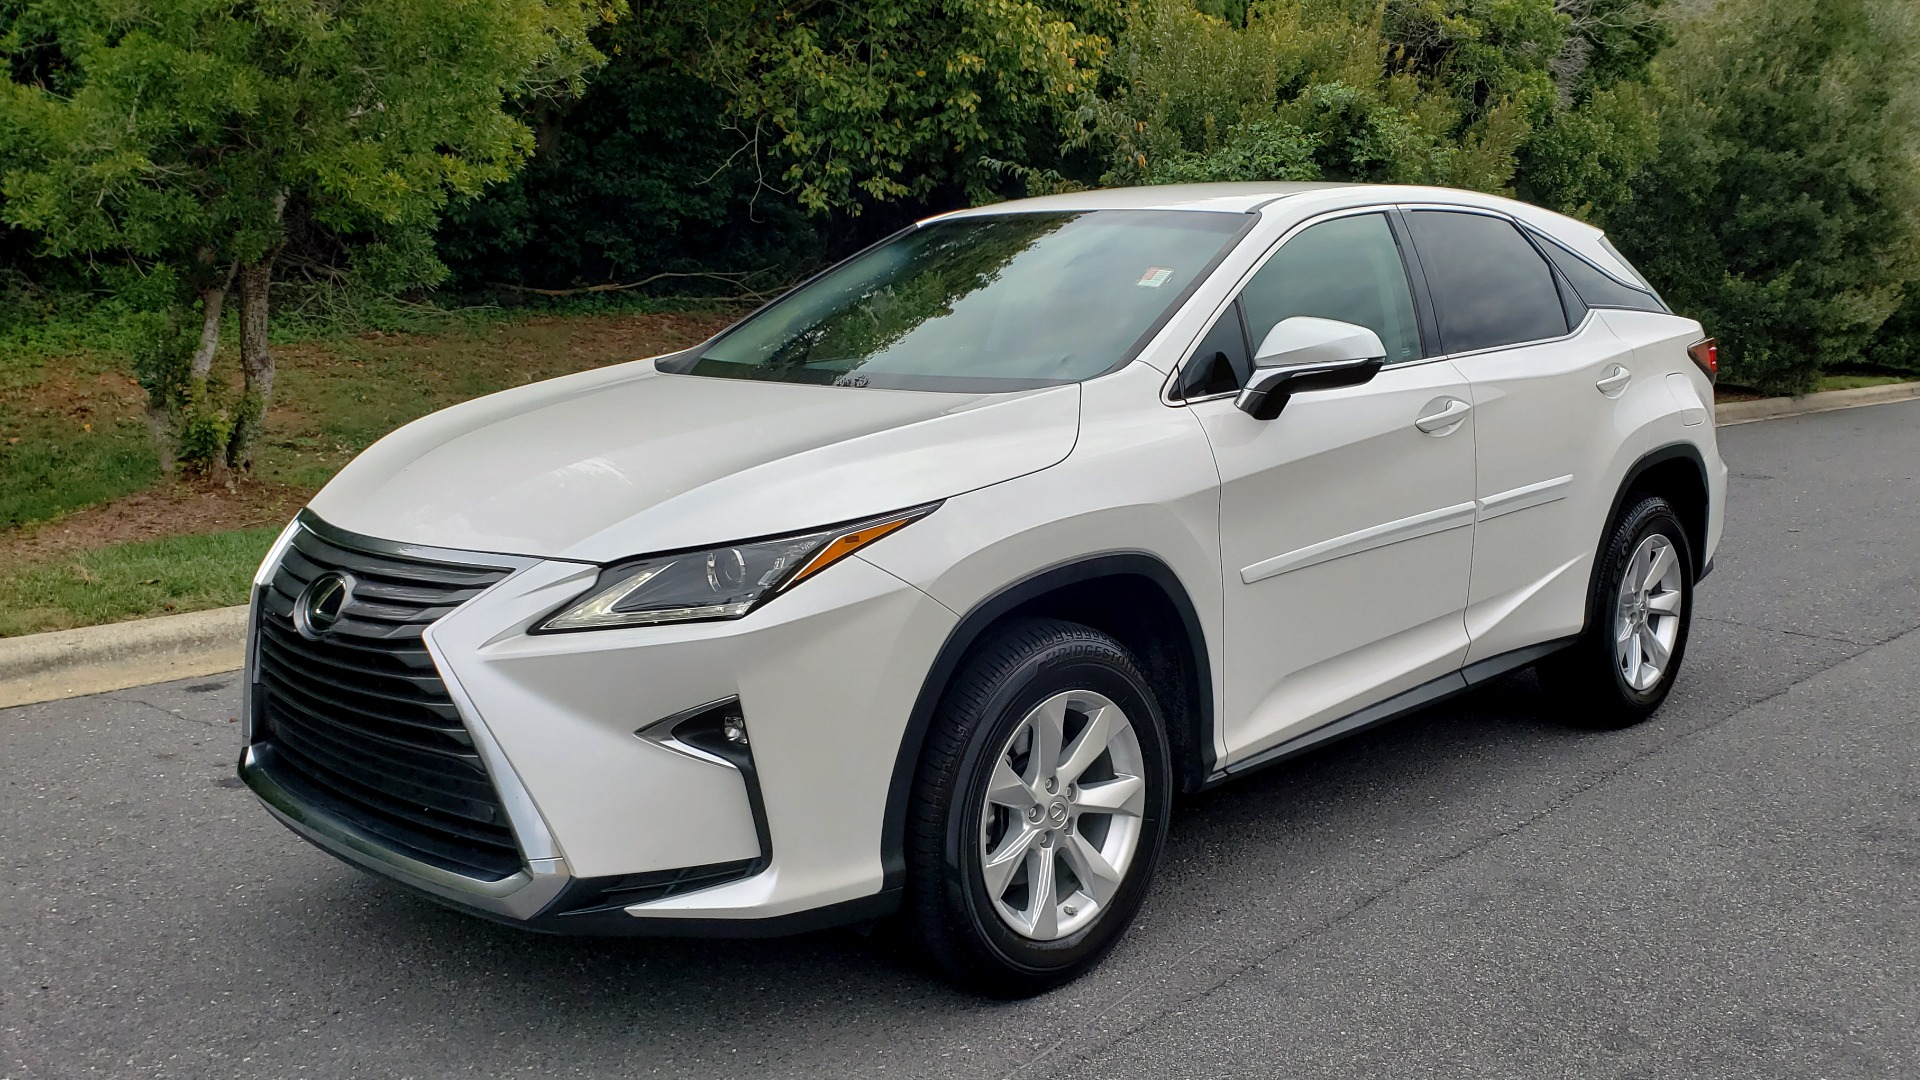 Used 2016 Lexus RX 350 FWD / 4-DR / 3.5L V6 / 8-SPD AUTO / LEATHER / REARVIEW for sale $29,795 at Formula Imports in Charlotte NC 28227 4